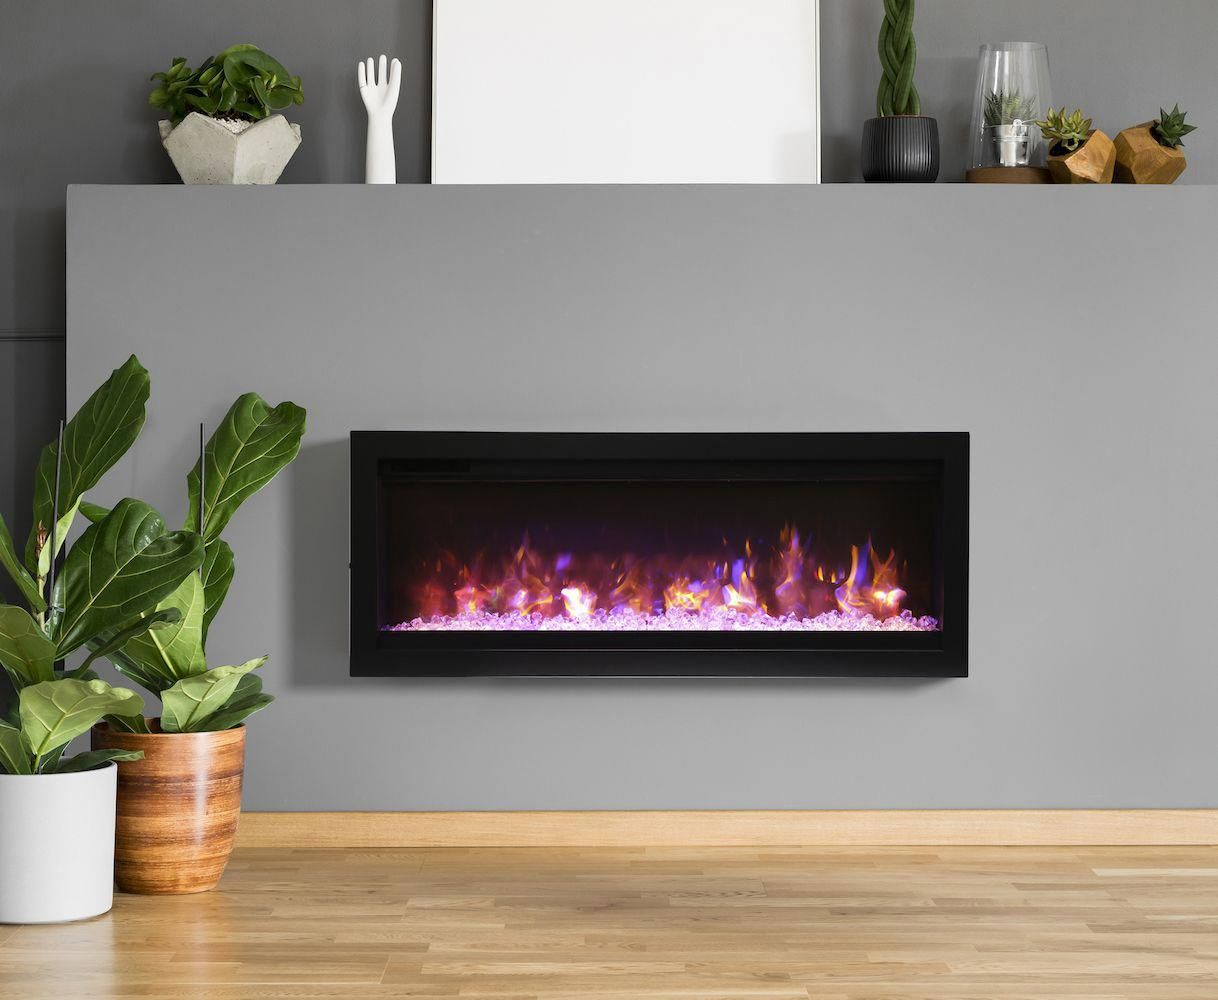 Obtain rerouted right here Exterior House Remodel | Built in electric  fireplace, Wall mount electric fireplace, Electric fireplace